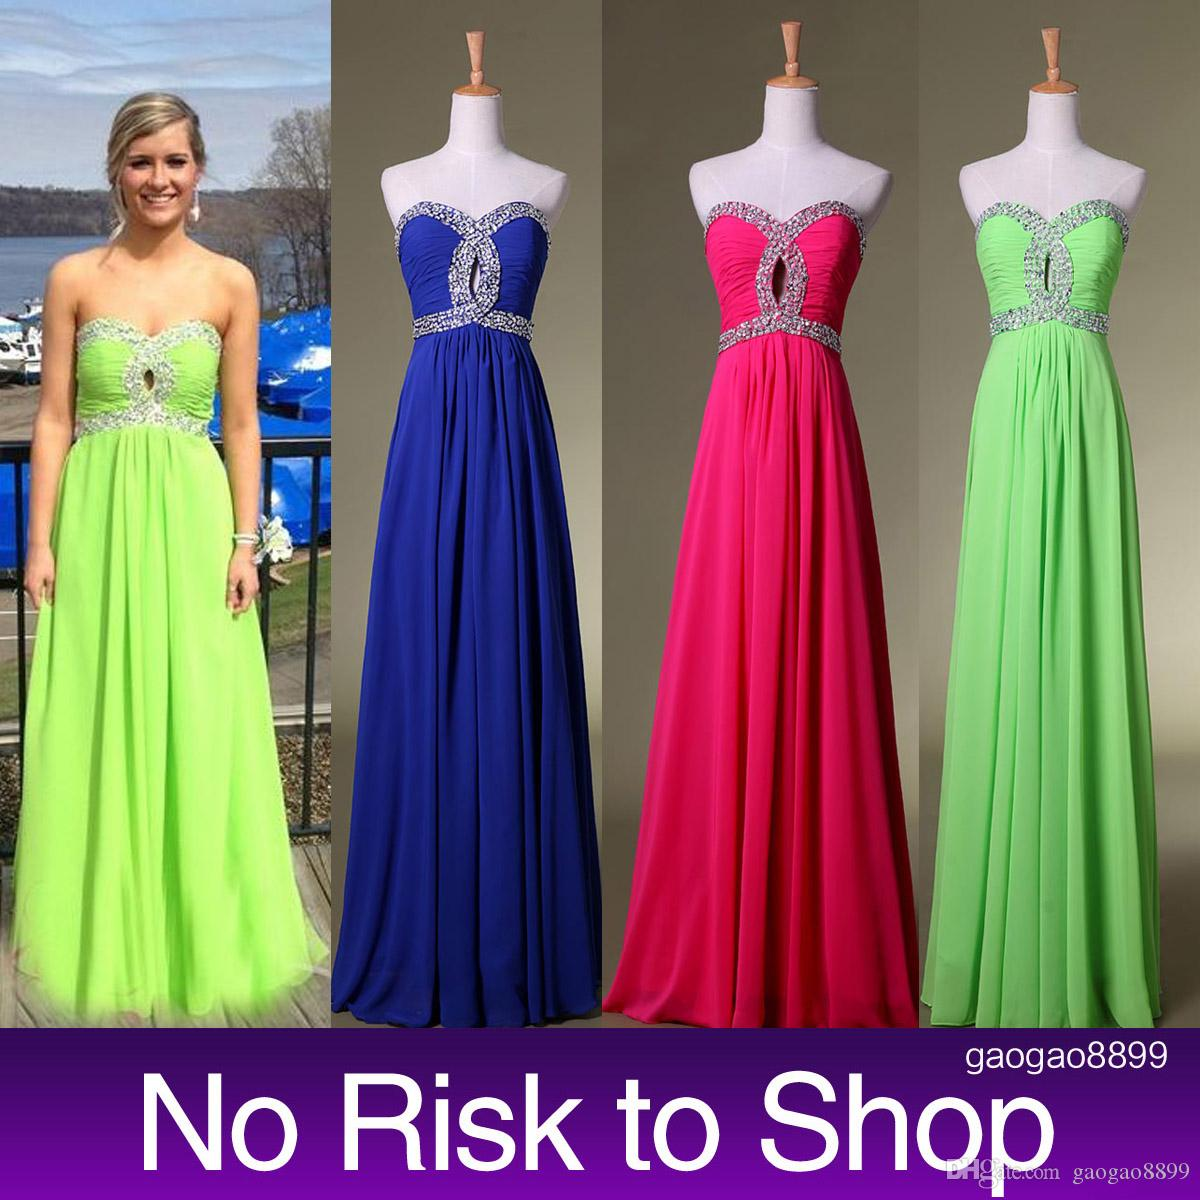 y Chiffon Formal Evening Prom Dresses Sweetheart Beads